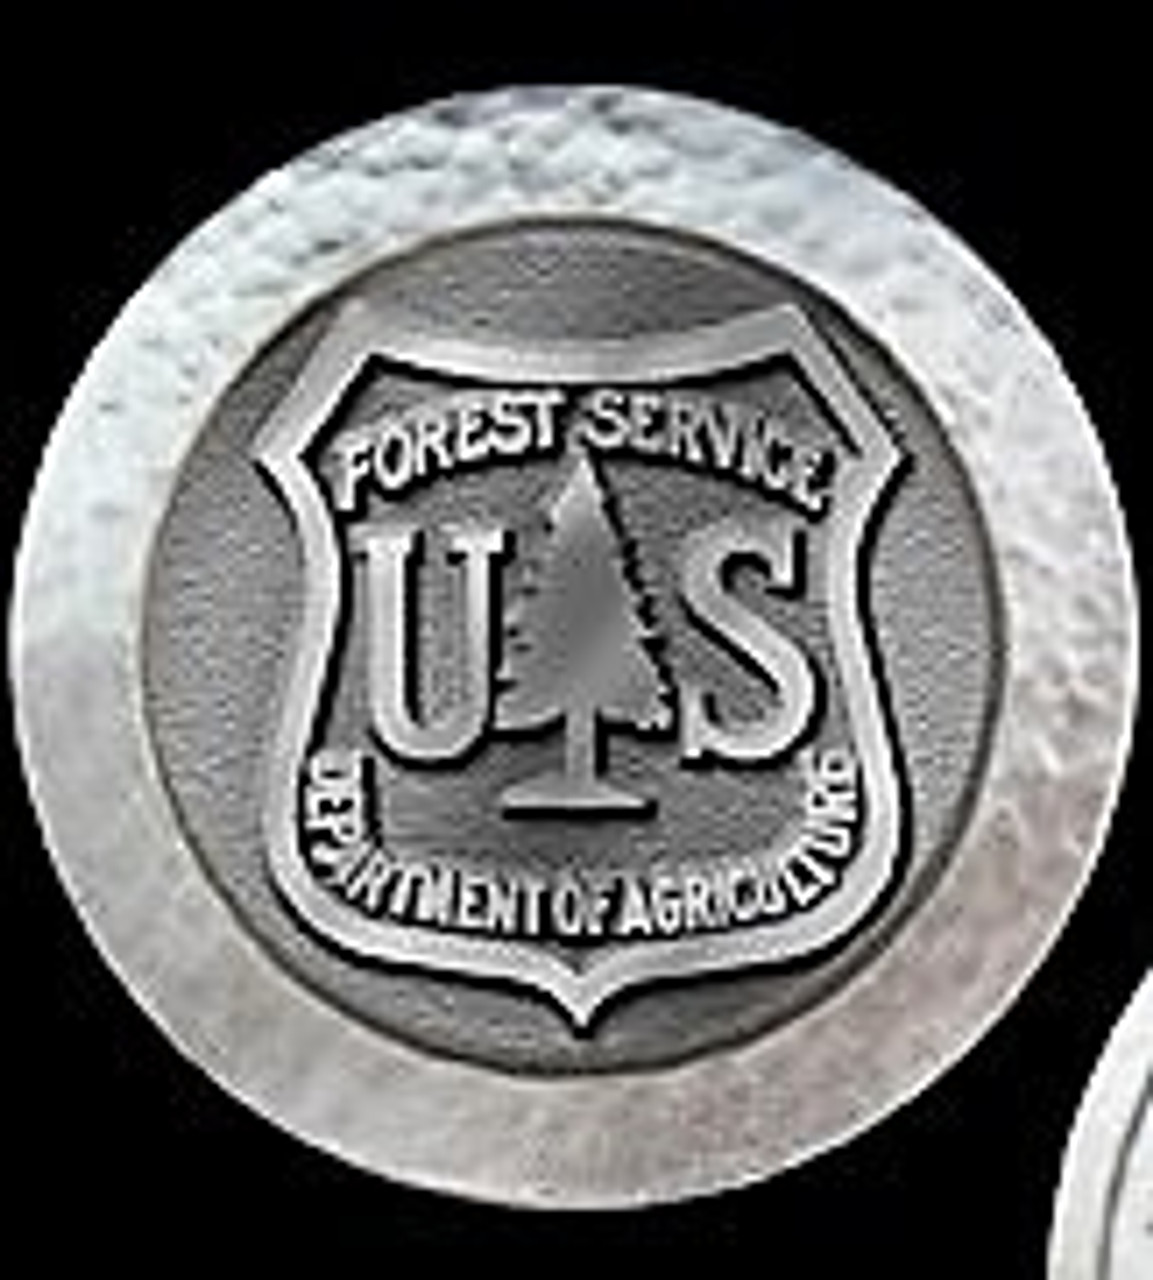 Forest Service Volunteer Appreciation Coin